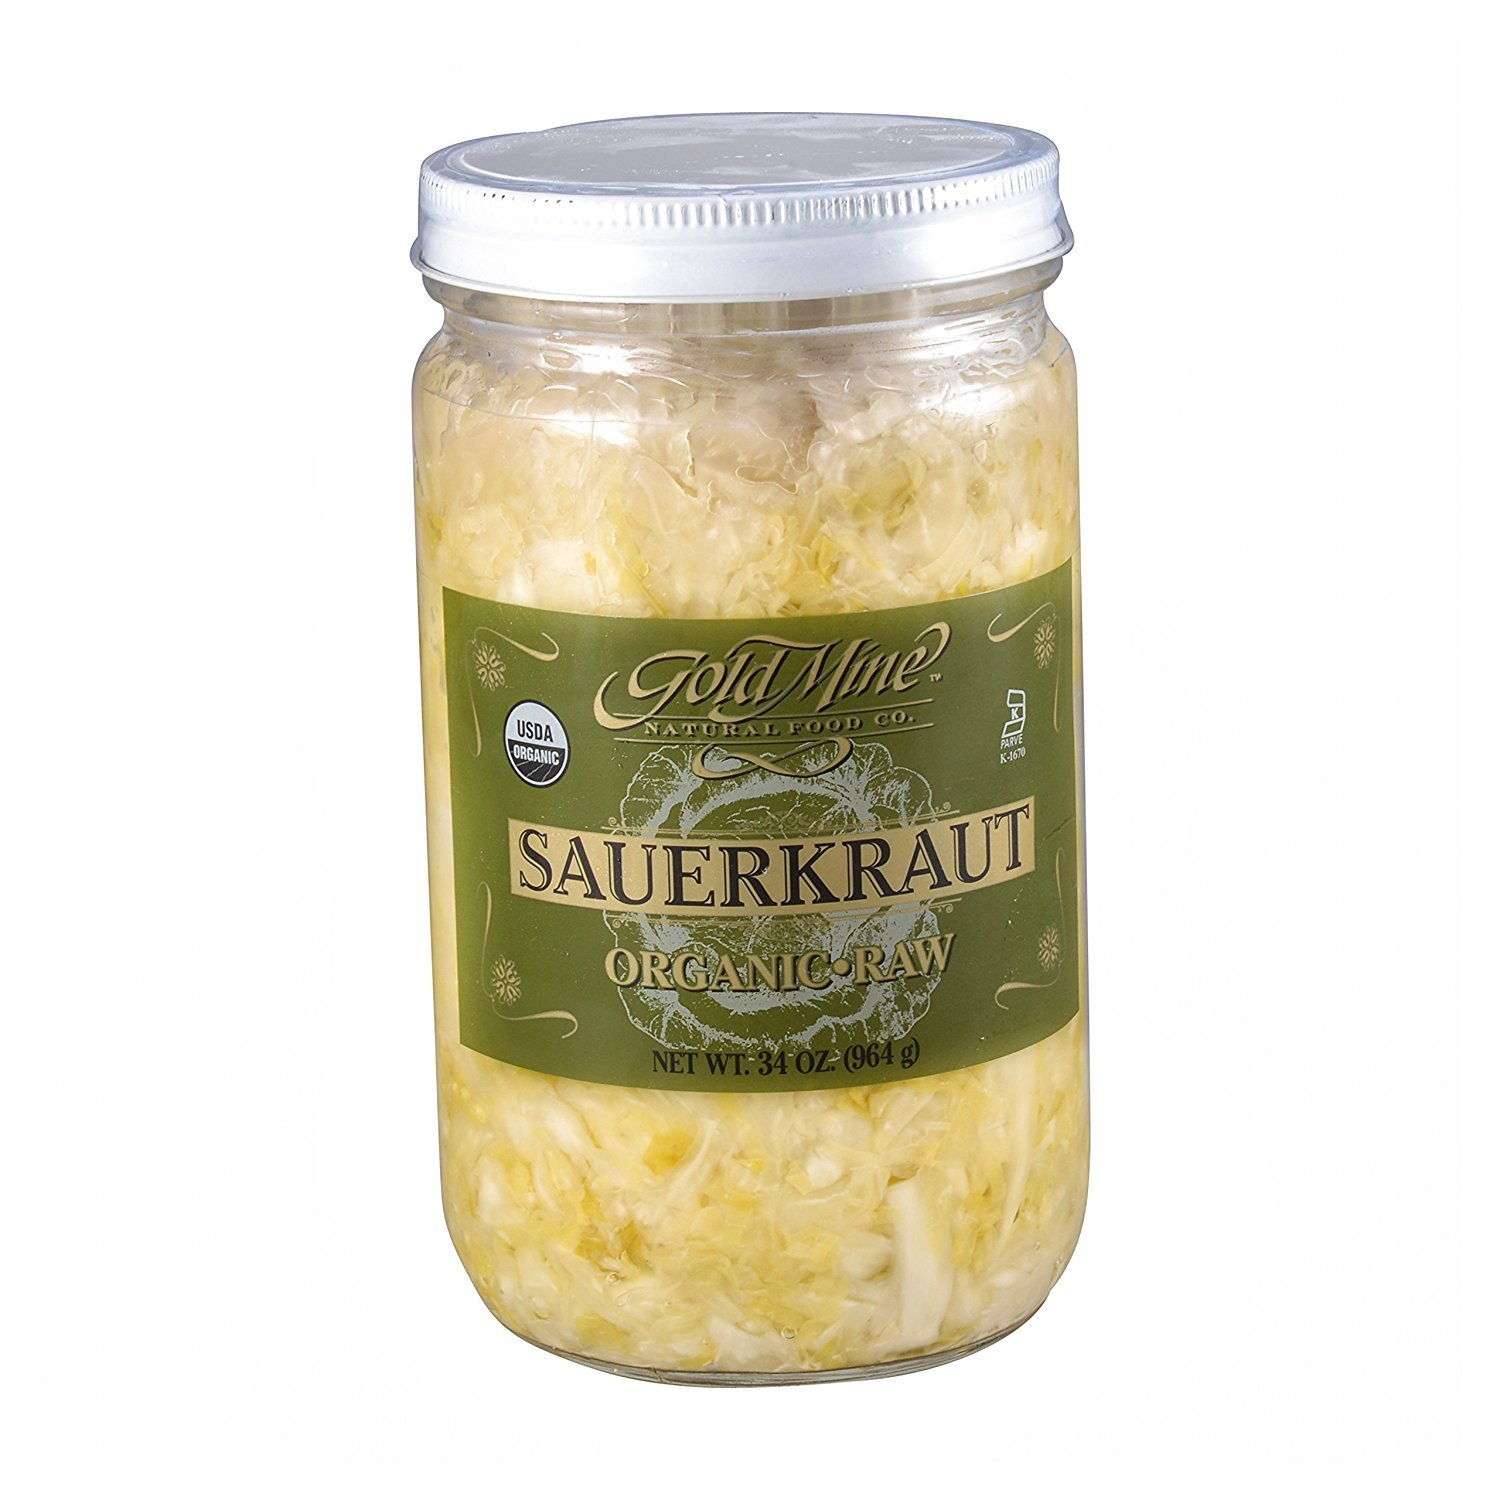 GOLD MINE ORGANIC RAW SAUERKRAUT 34 OZ by Gold Mine Natural Food Co.